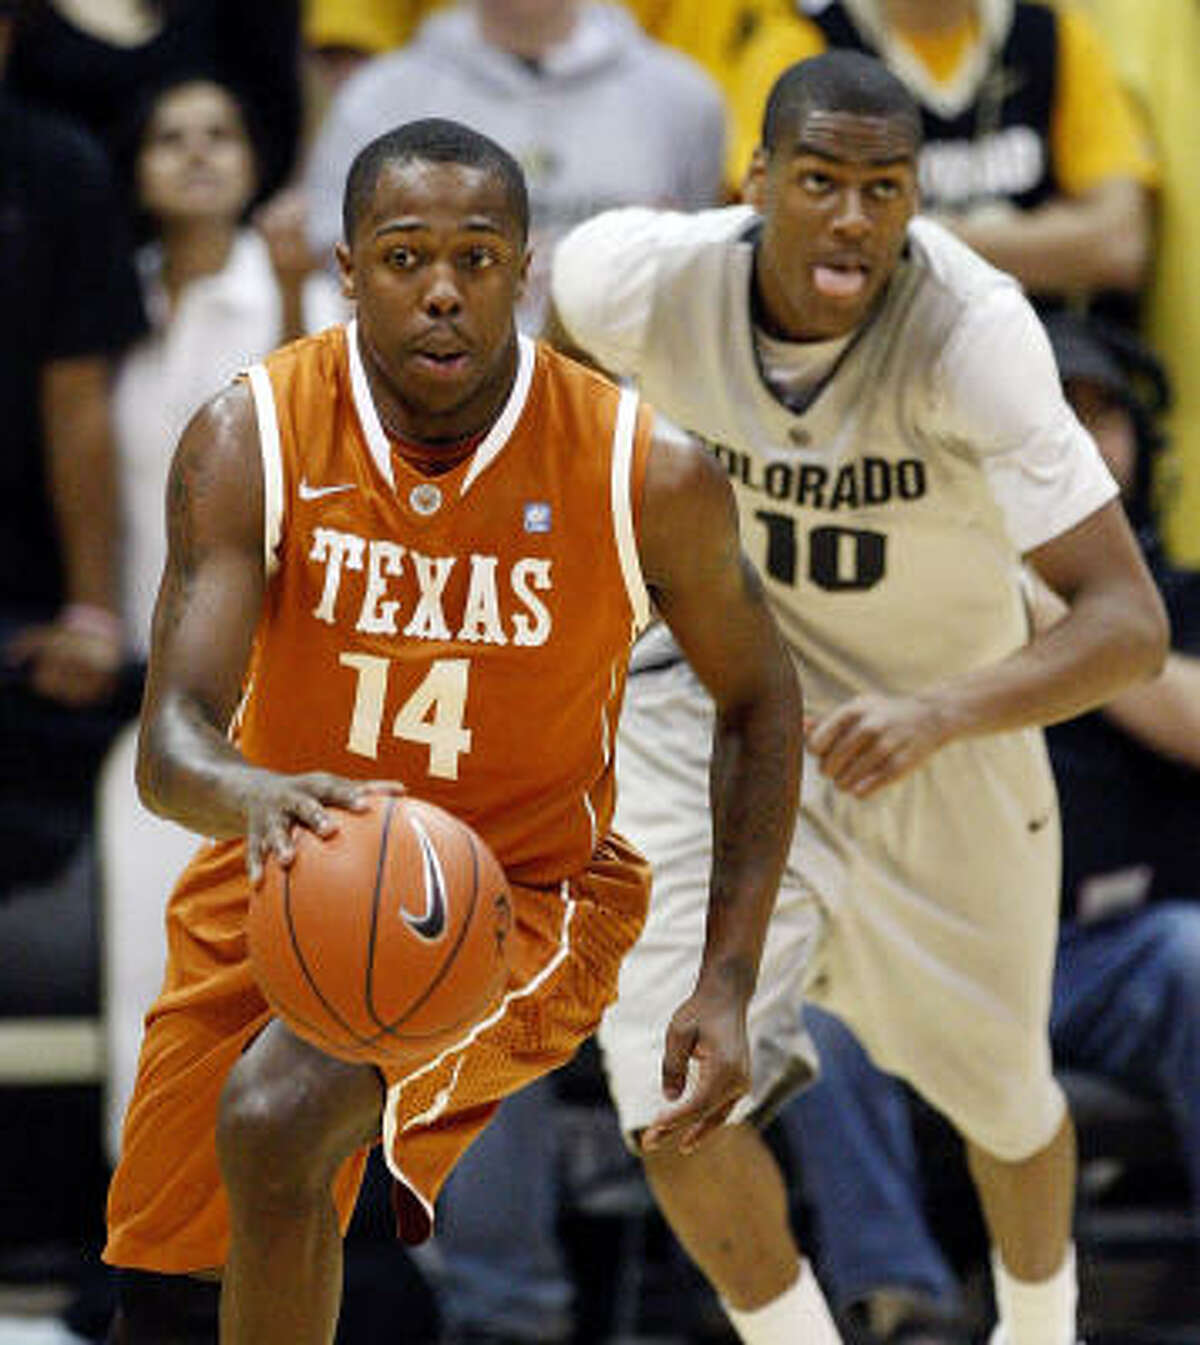 Texas guard J'Covan Brown drives the ball up court as Colorado guard Alec Burks gives chase.